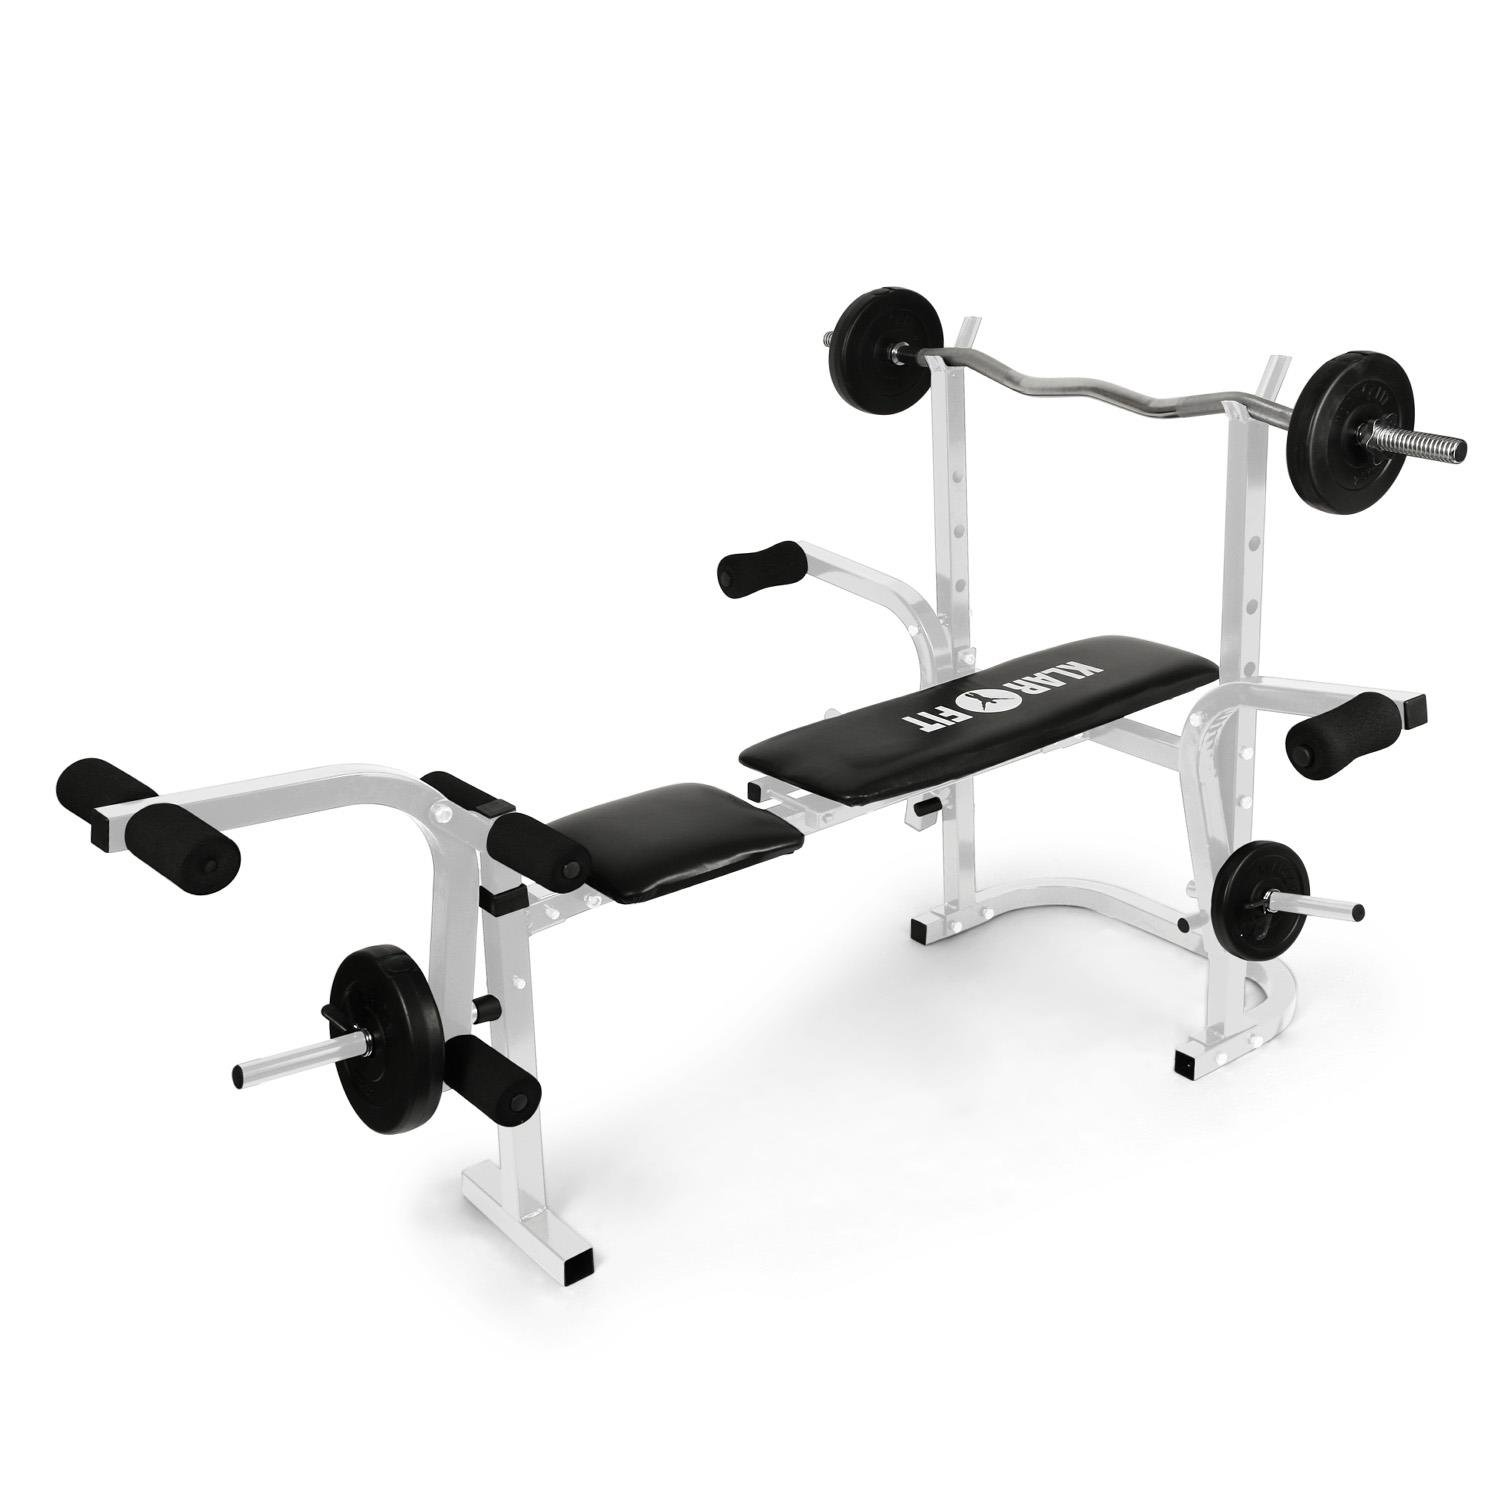 123167 Jk6055 Adjustable Estante1541770926 Fitness Jk Con Banco UzMpVS